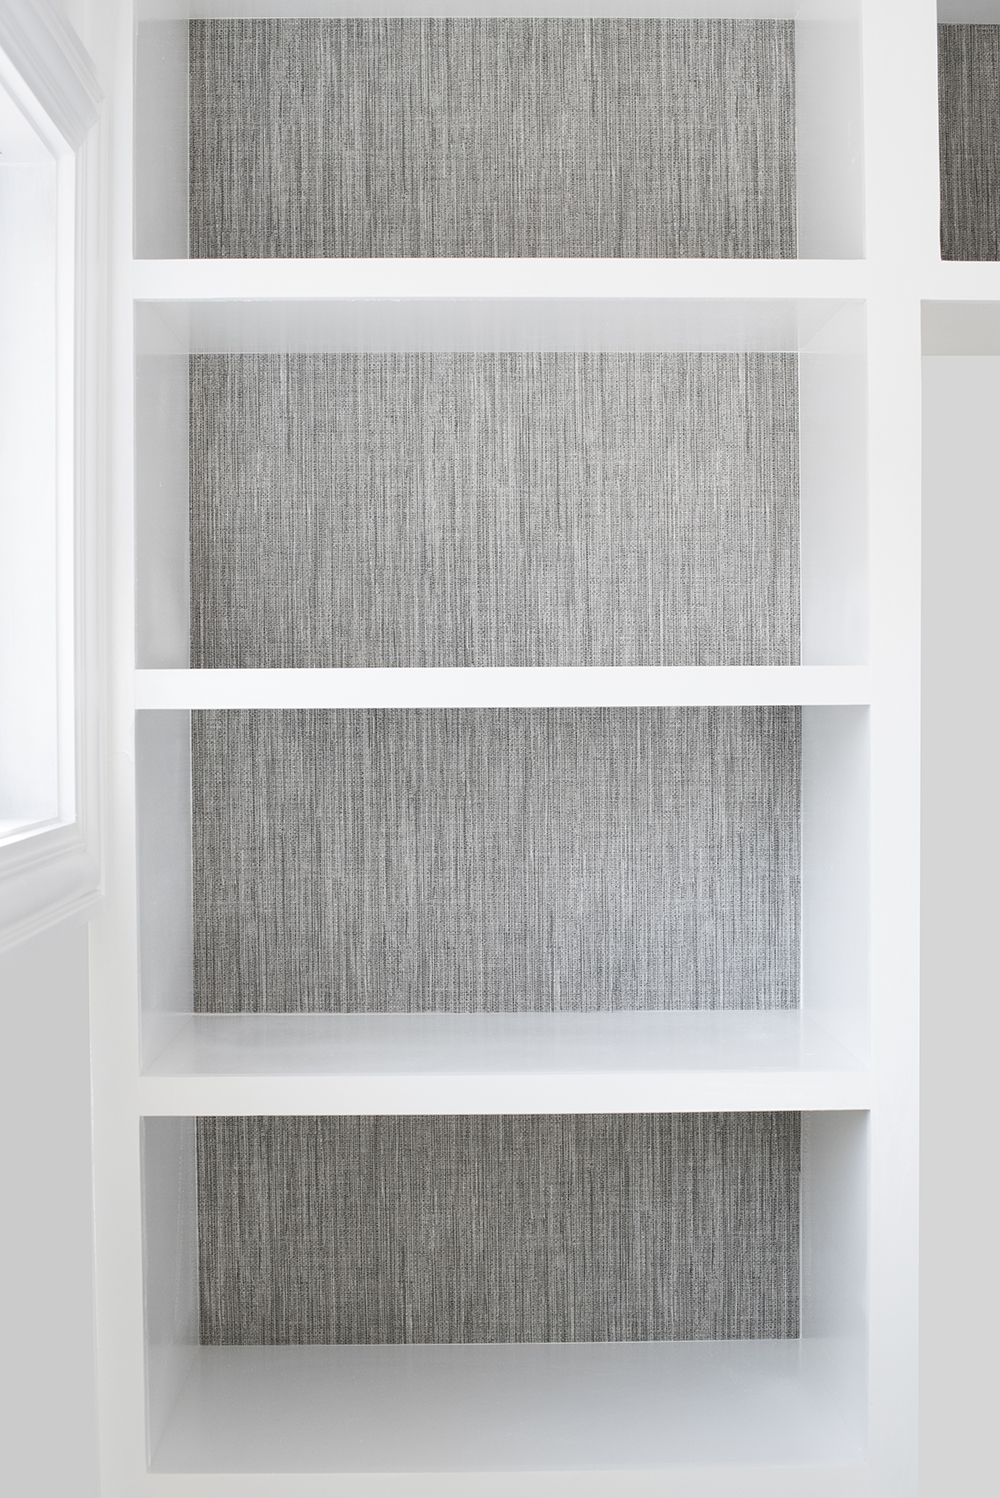 How to Wallpaper Built-Ins + My Favorite Grasscloth - roomfortuesday.com